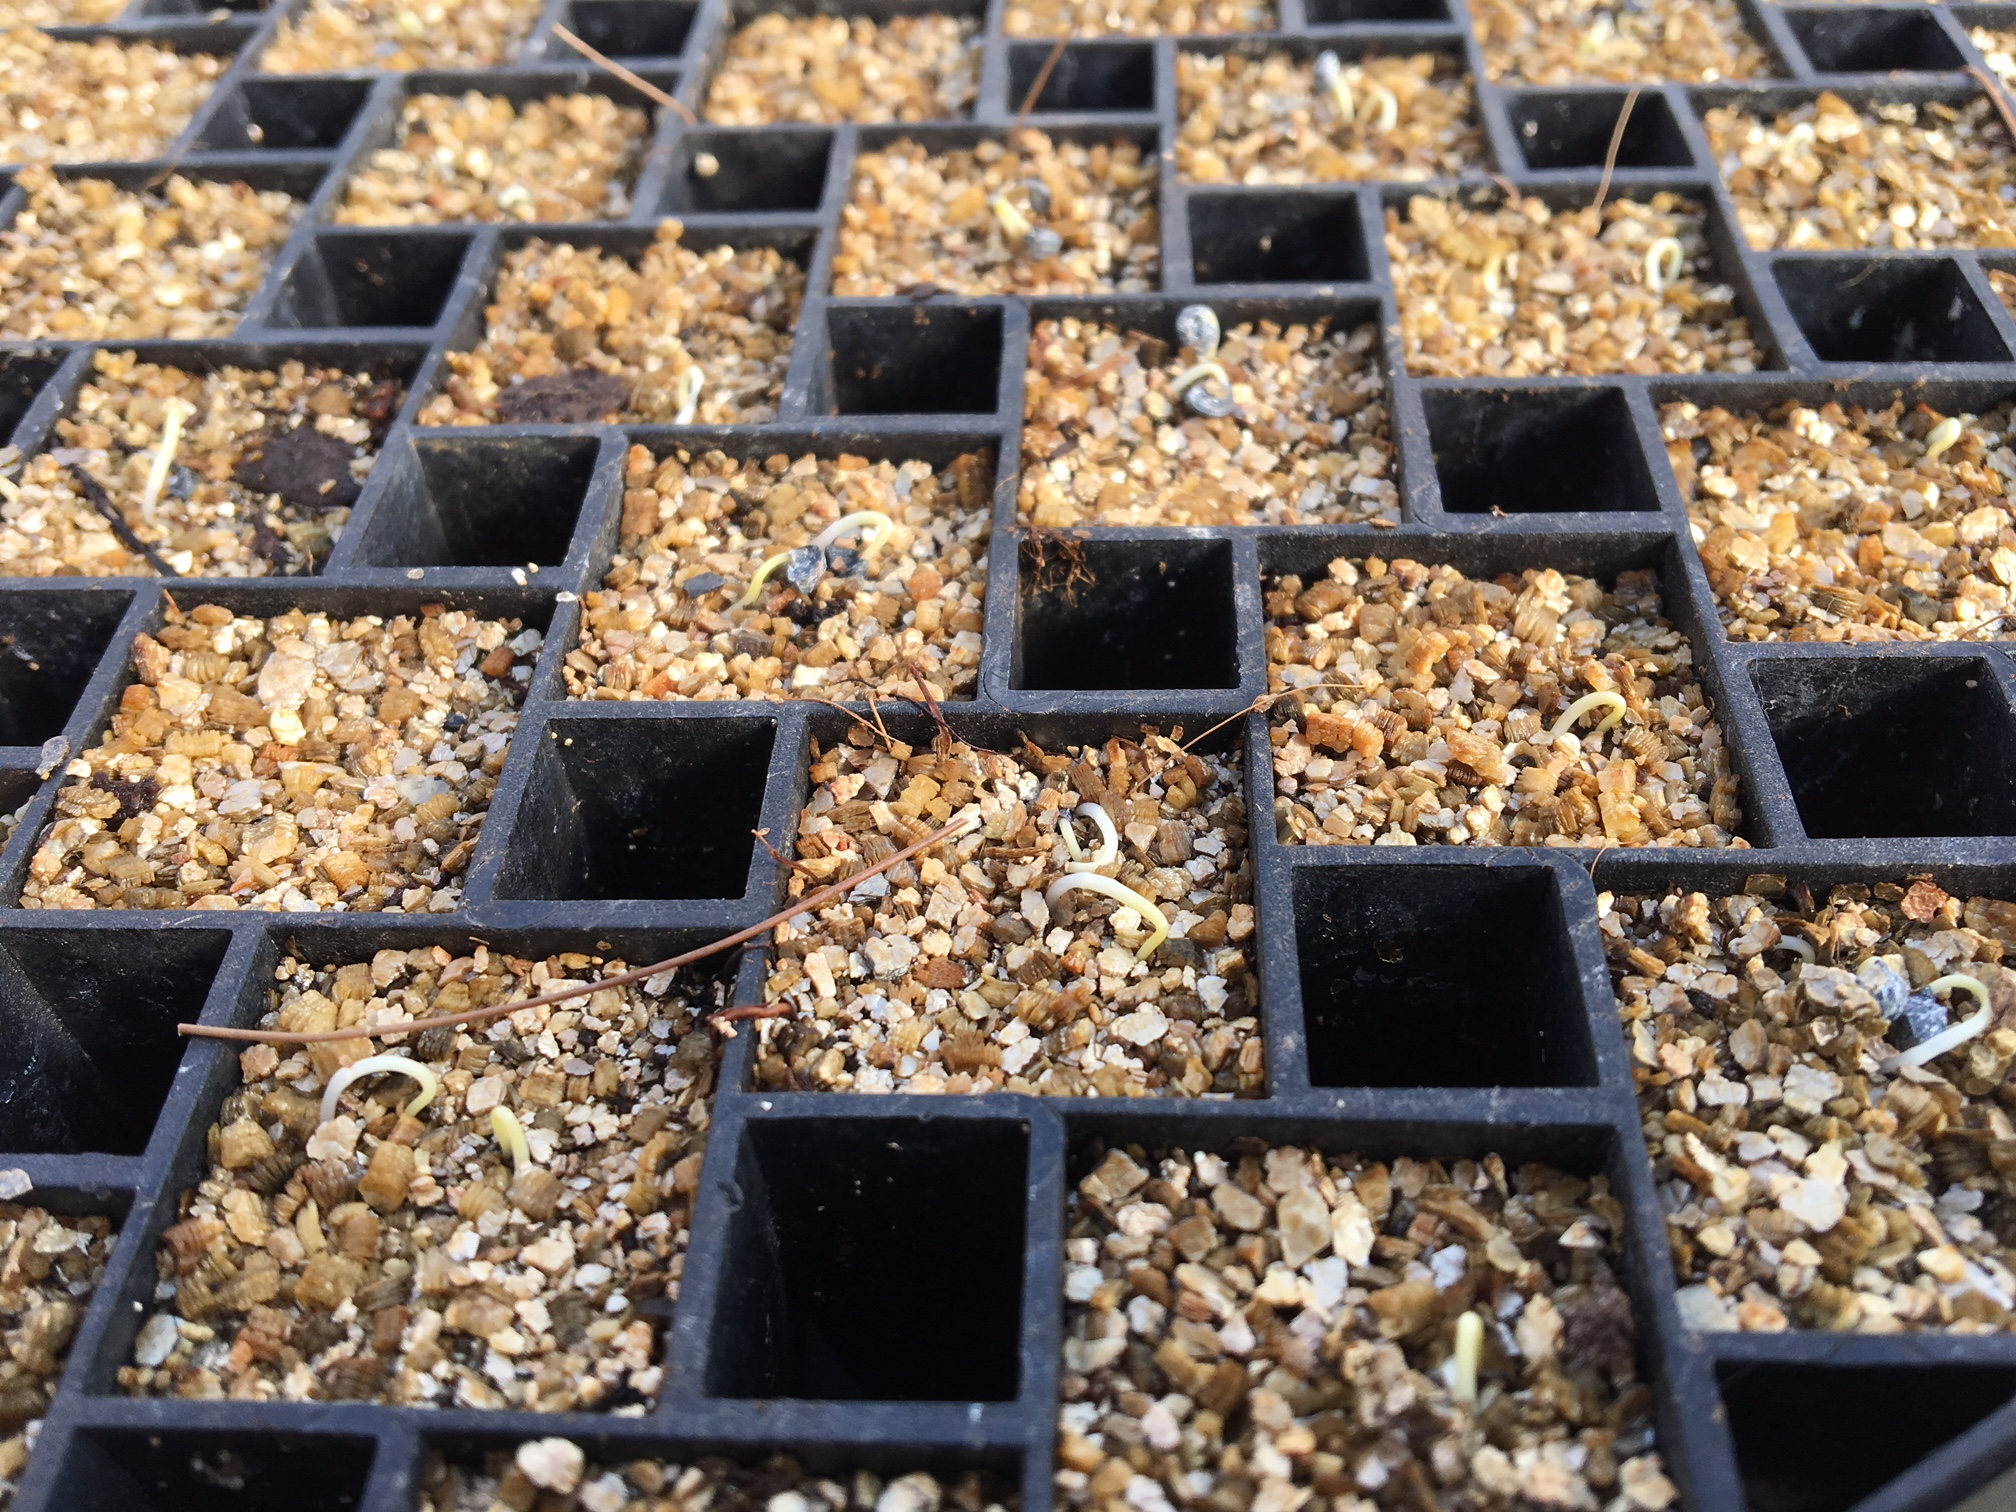 Newly sprouted onion seeds